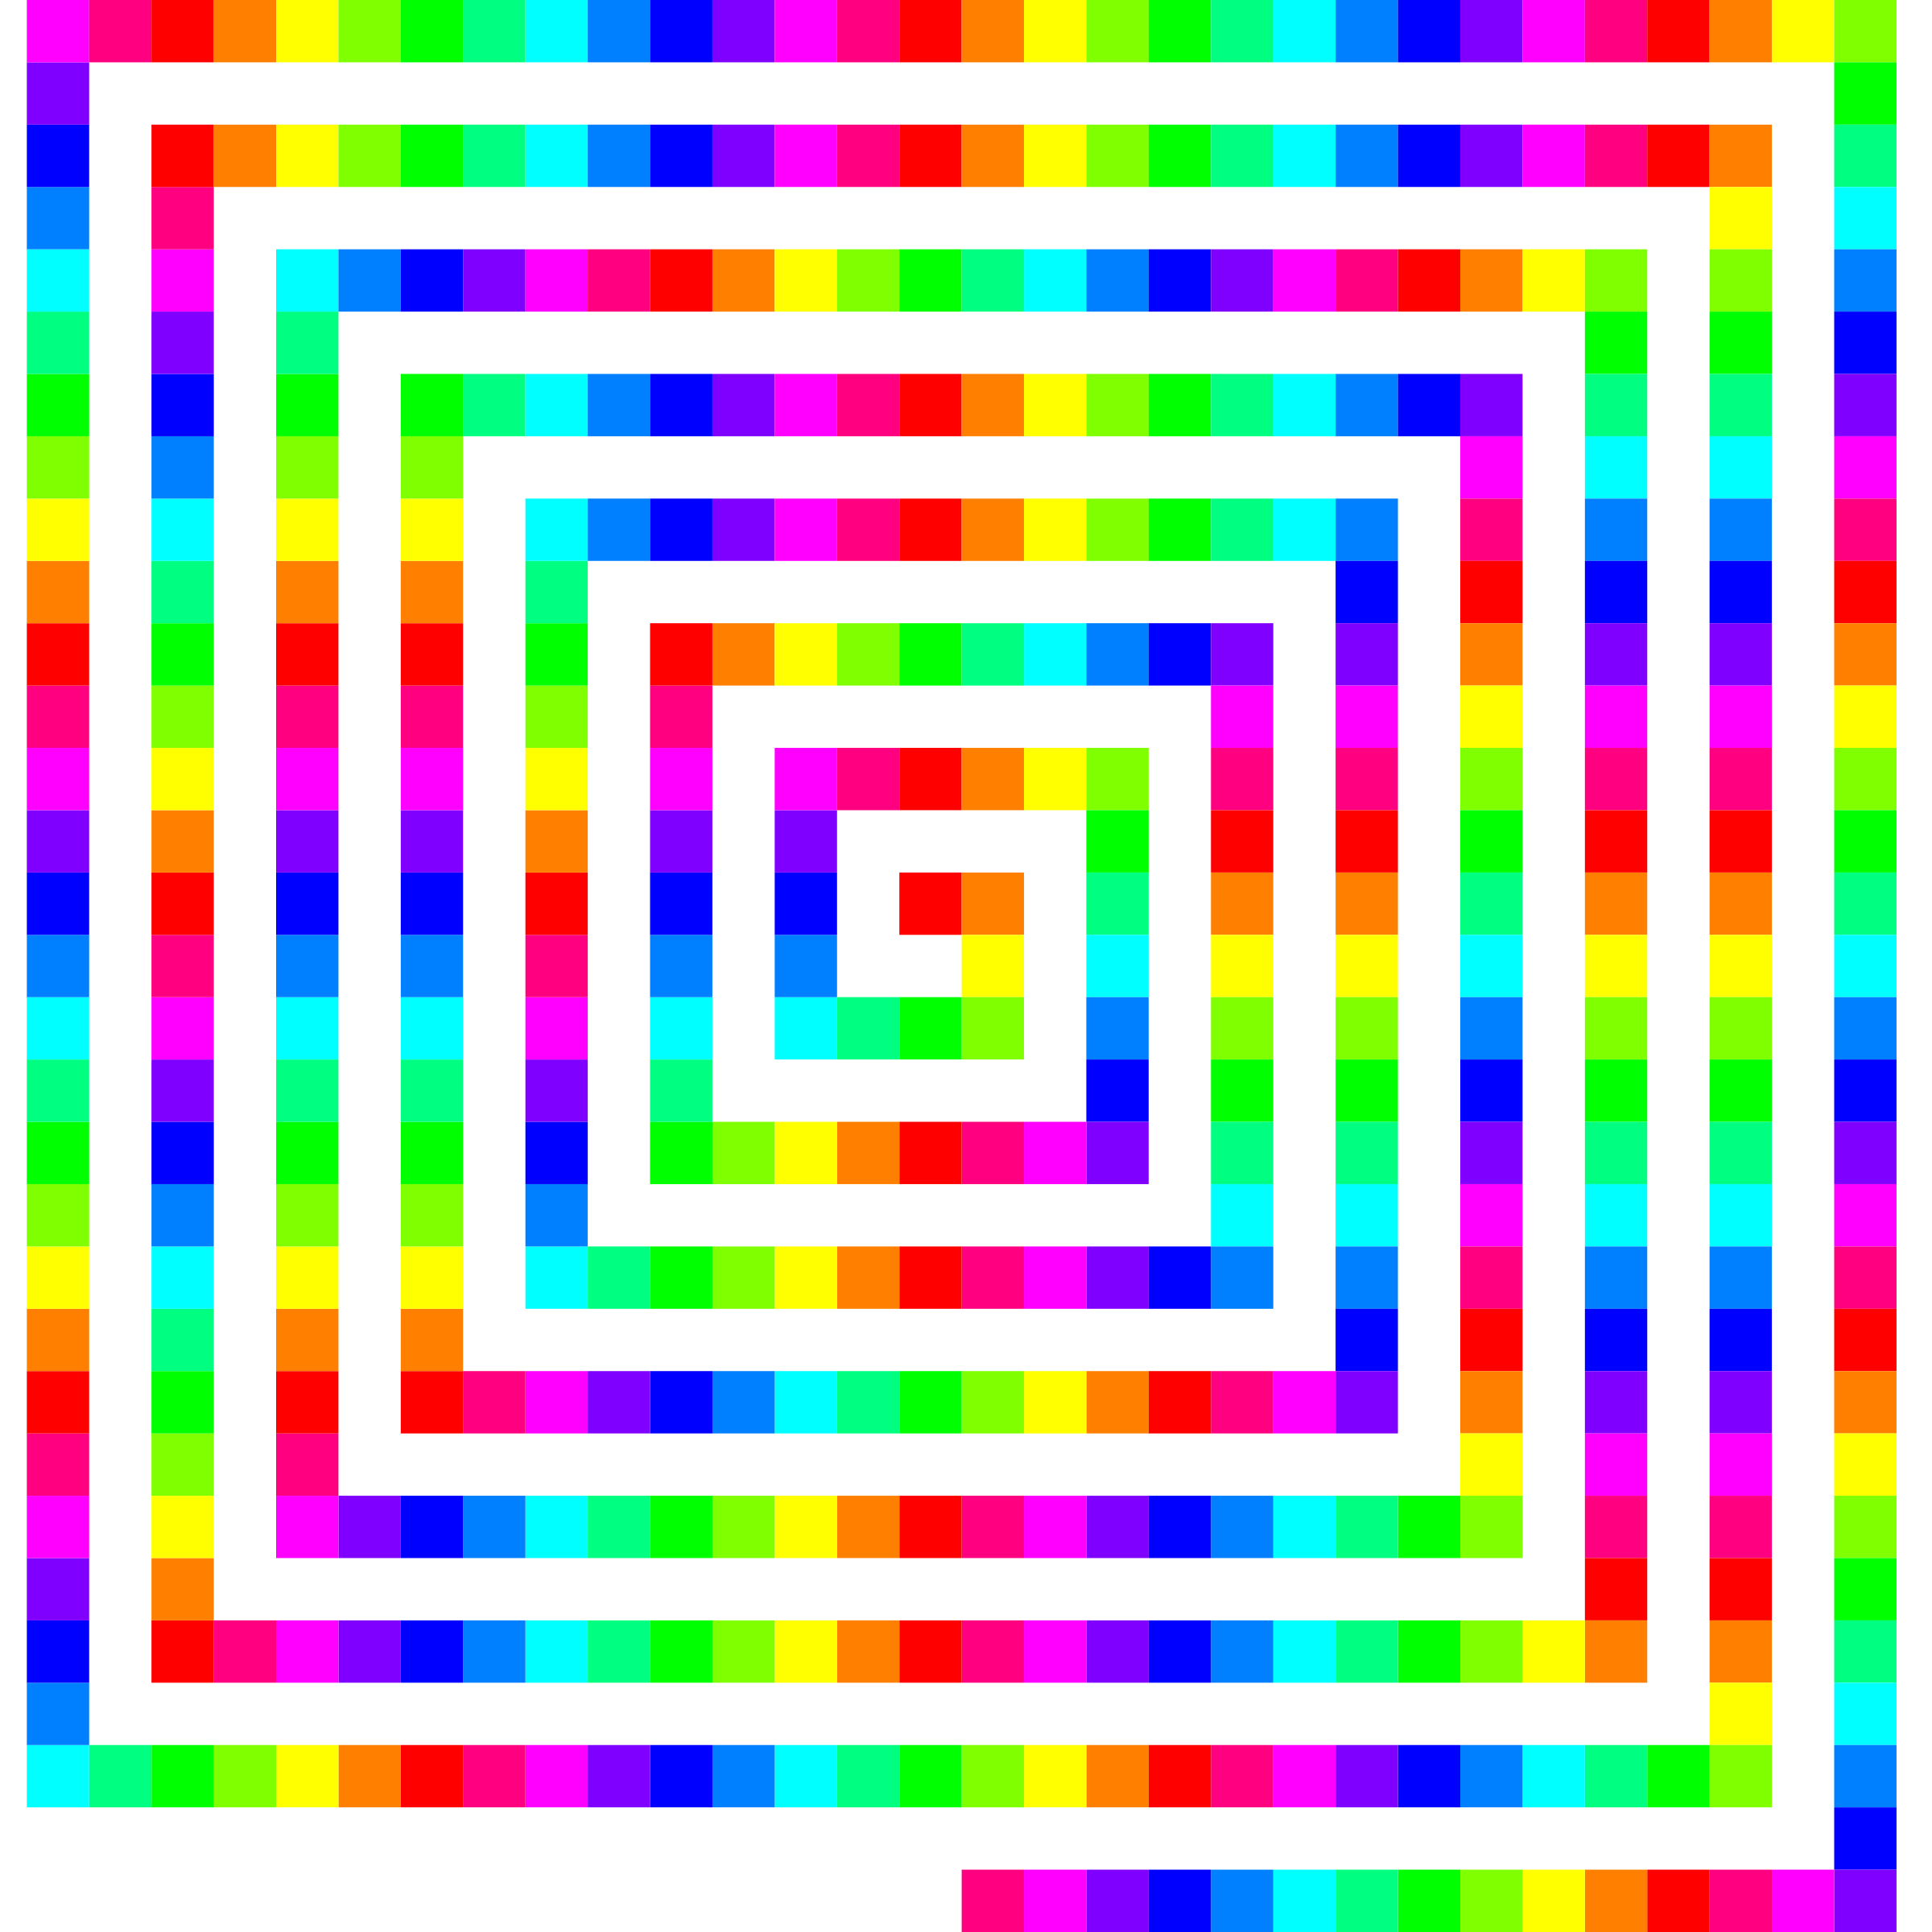 12 color 480 square spiral by 10binary